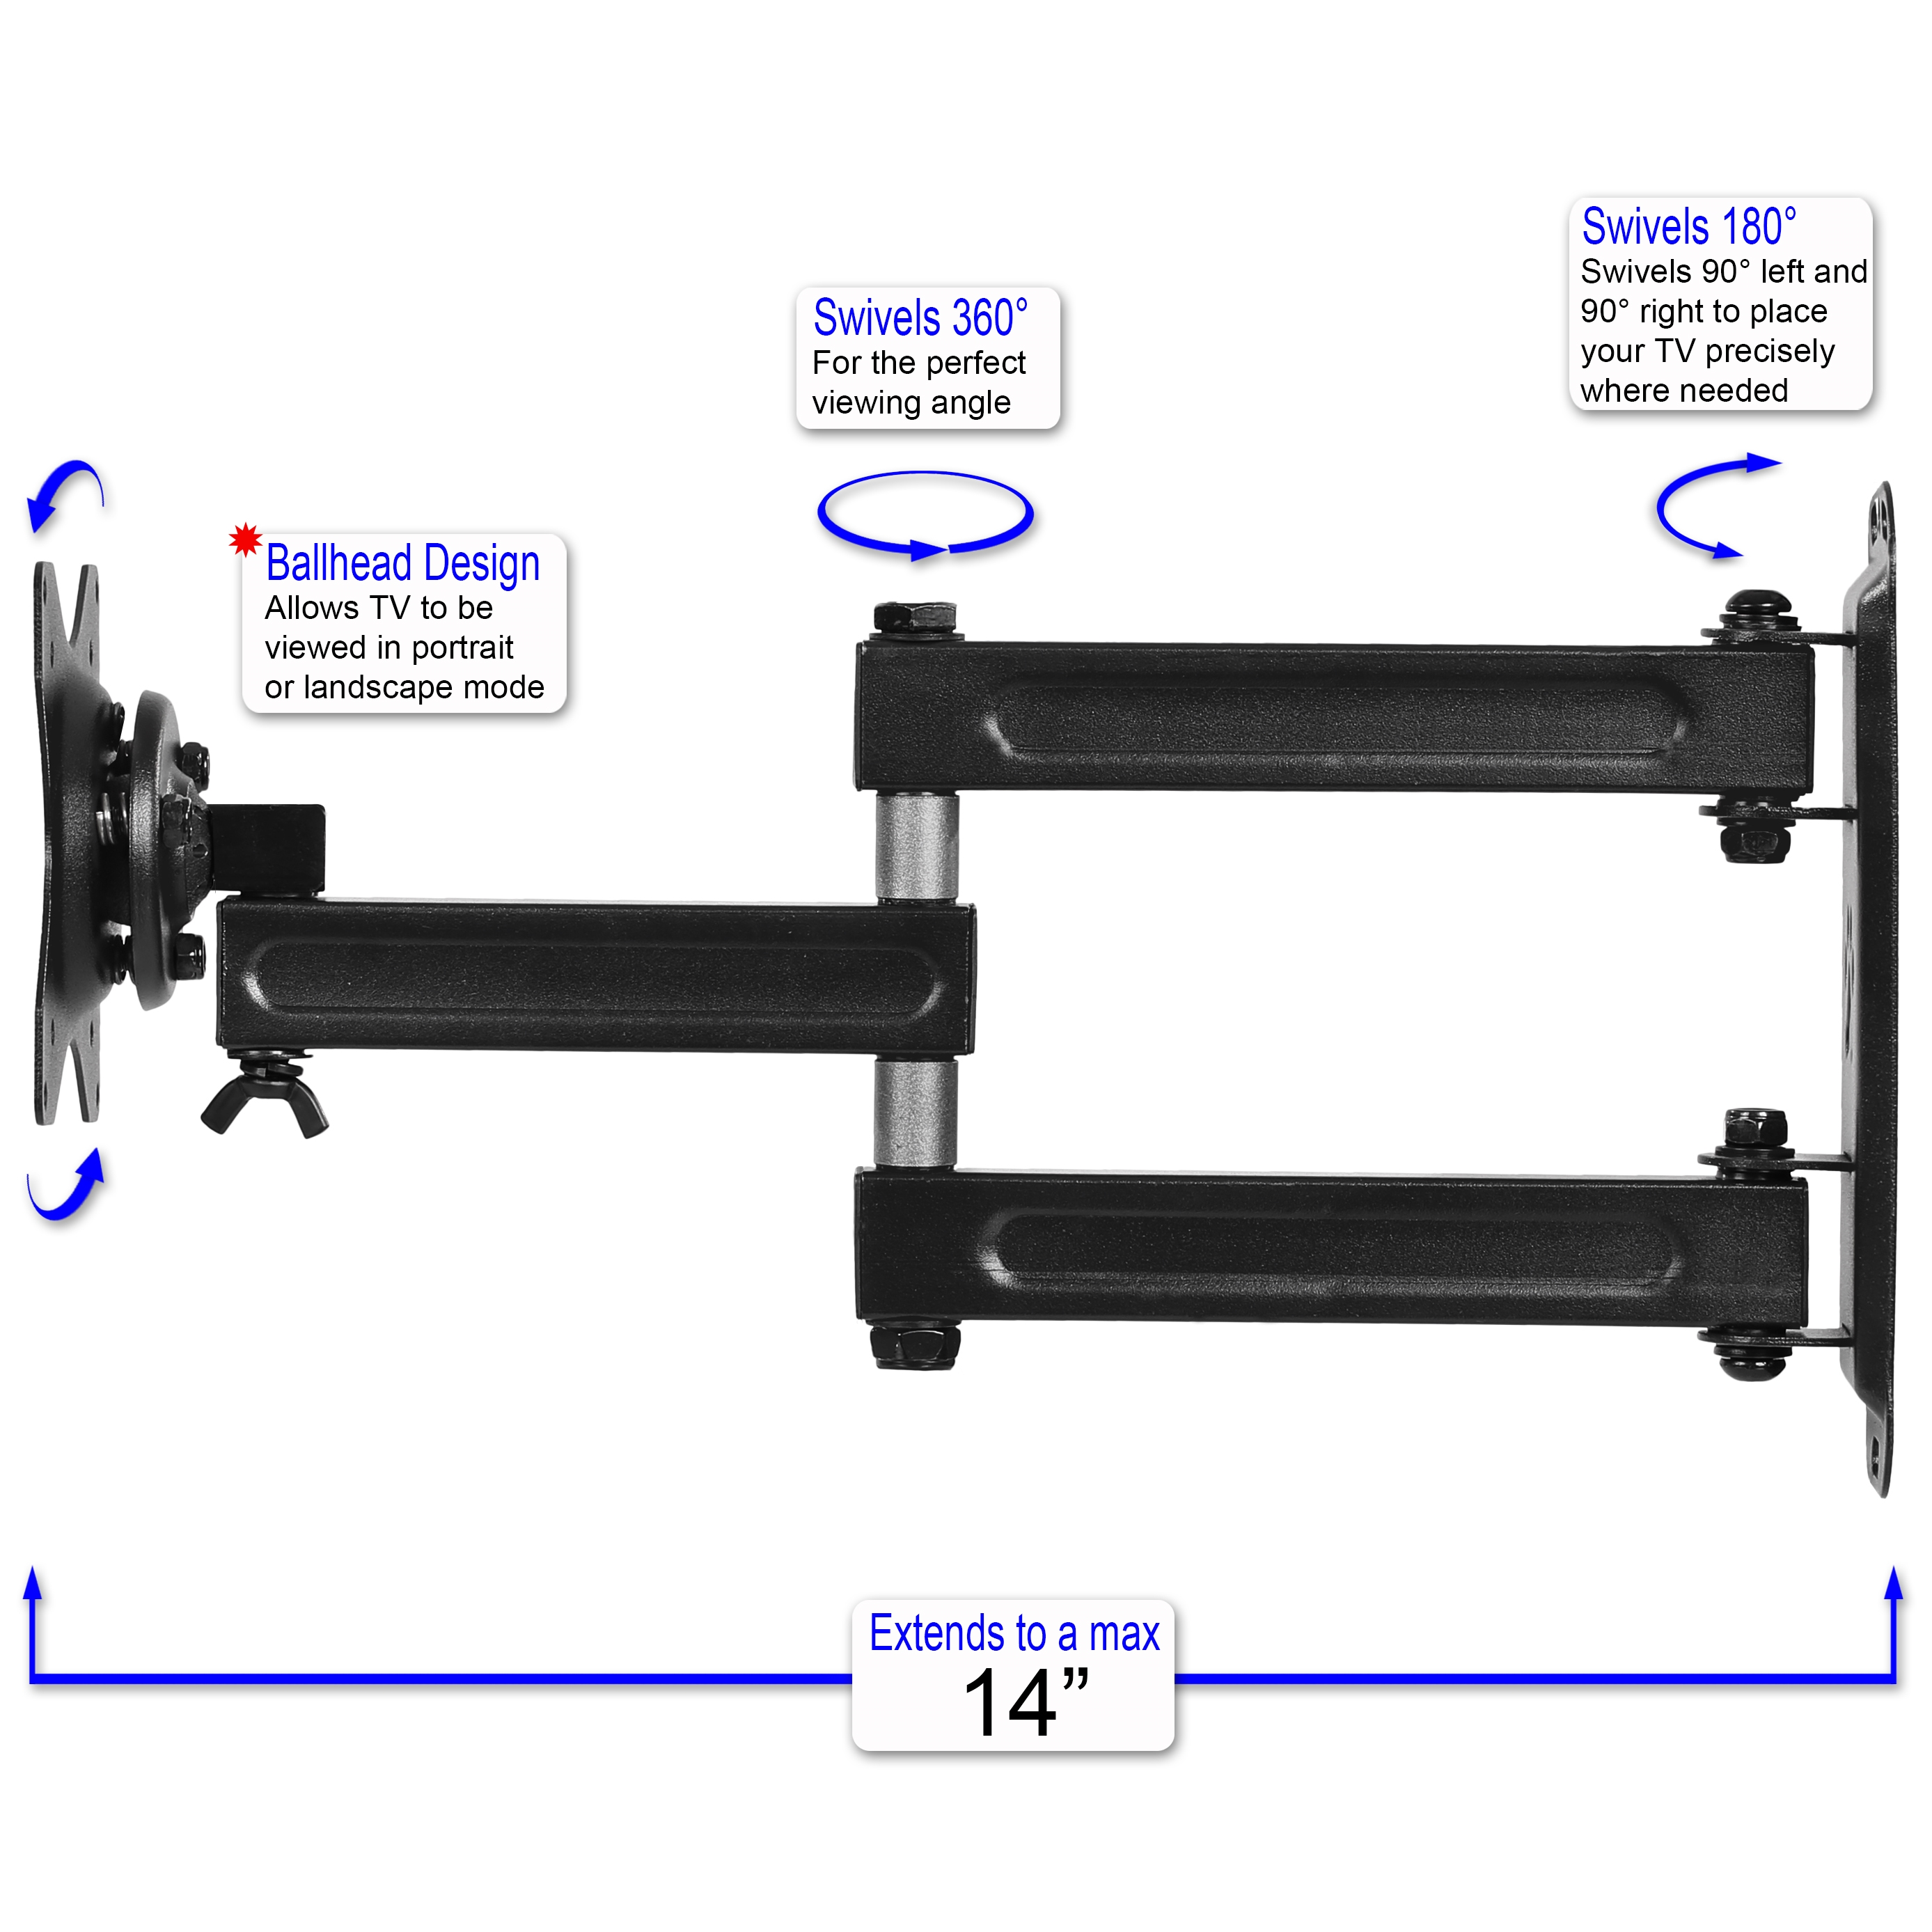 Cheetah Mounts ALAMB Articulating Arm (15 Extension) TV Wall Mount Bracket  for 12-24 TVs and Displays up to VESA 100 and up to 40lbs, Including a 10'  ...